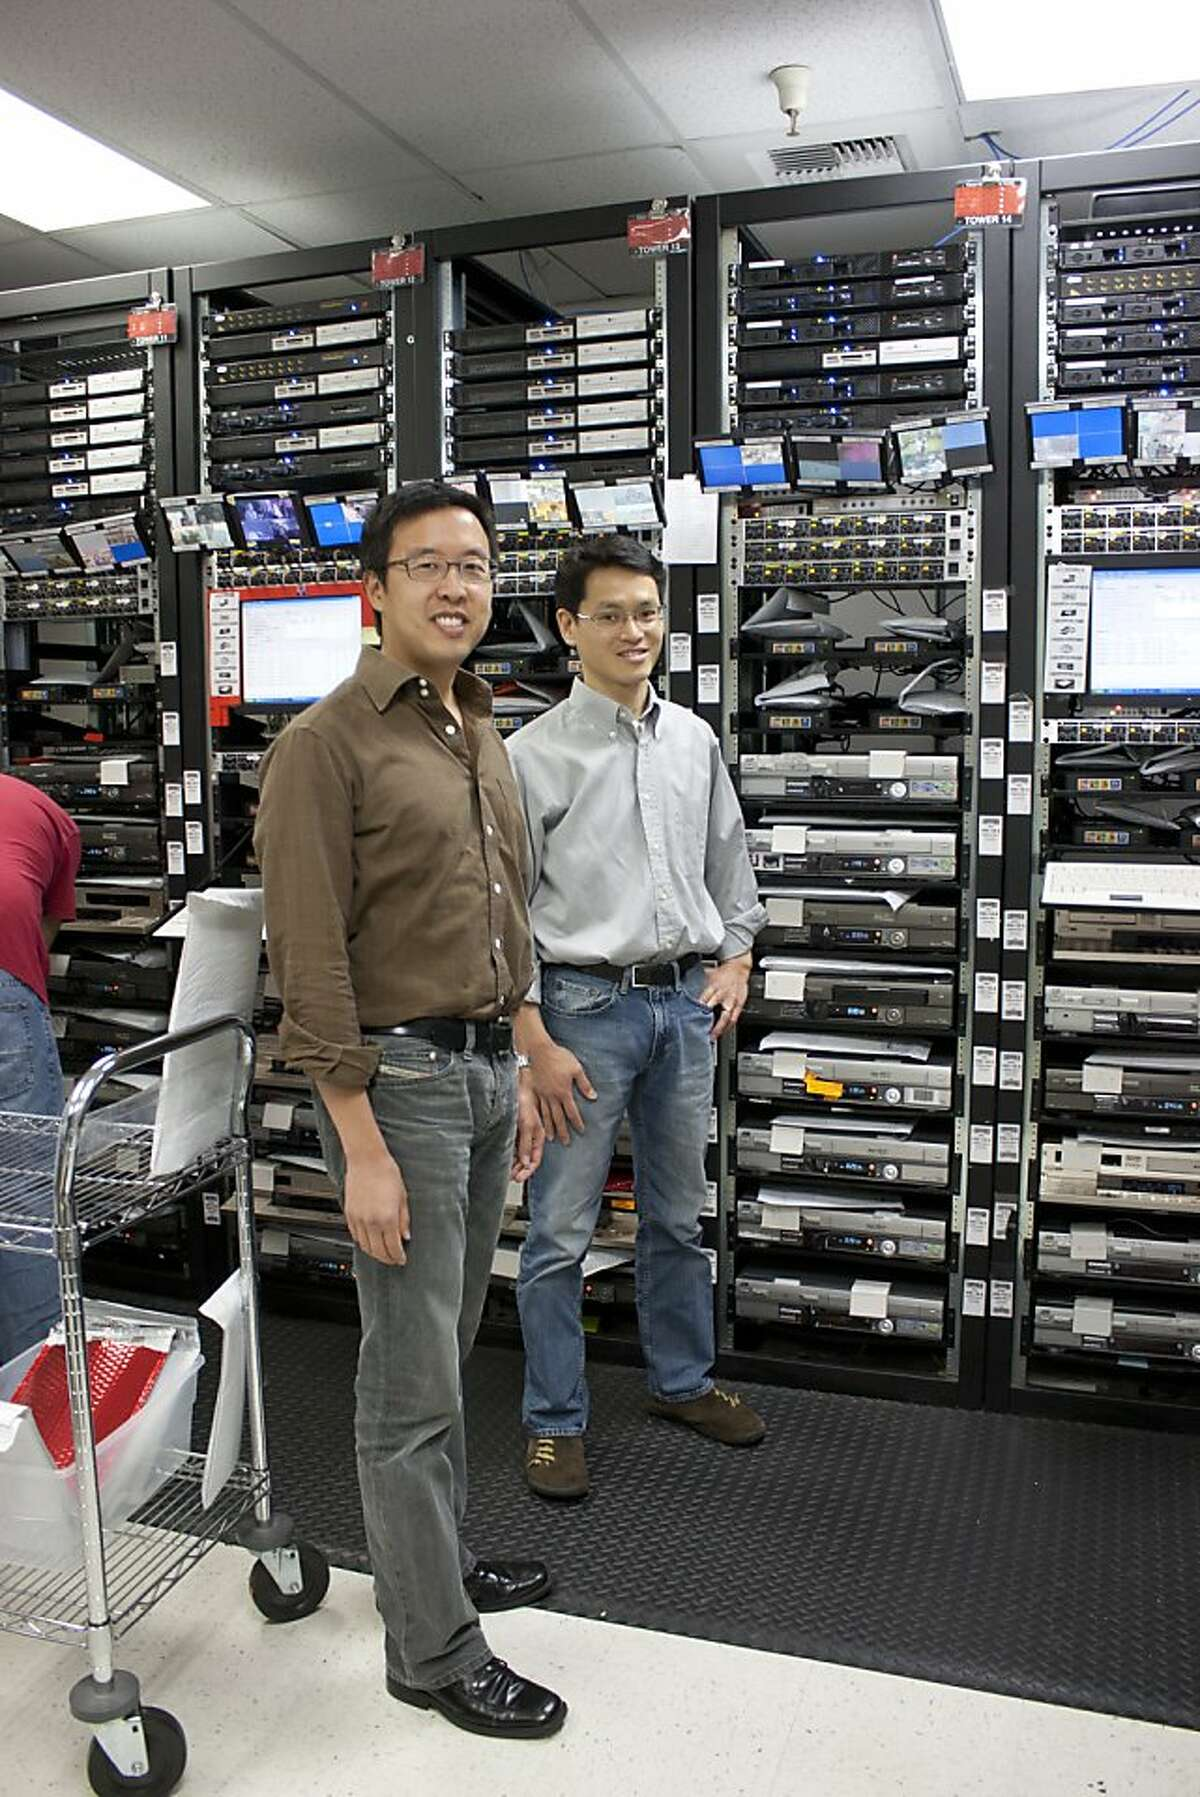 Michael Chang (CEO in brown shirt, left) and Andy Choi (CTO in light shirt, right) amidst towers of VCRs at the YesVideo headquarters in Santa Clara.